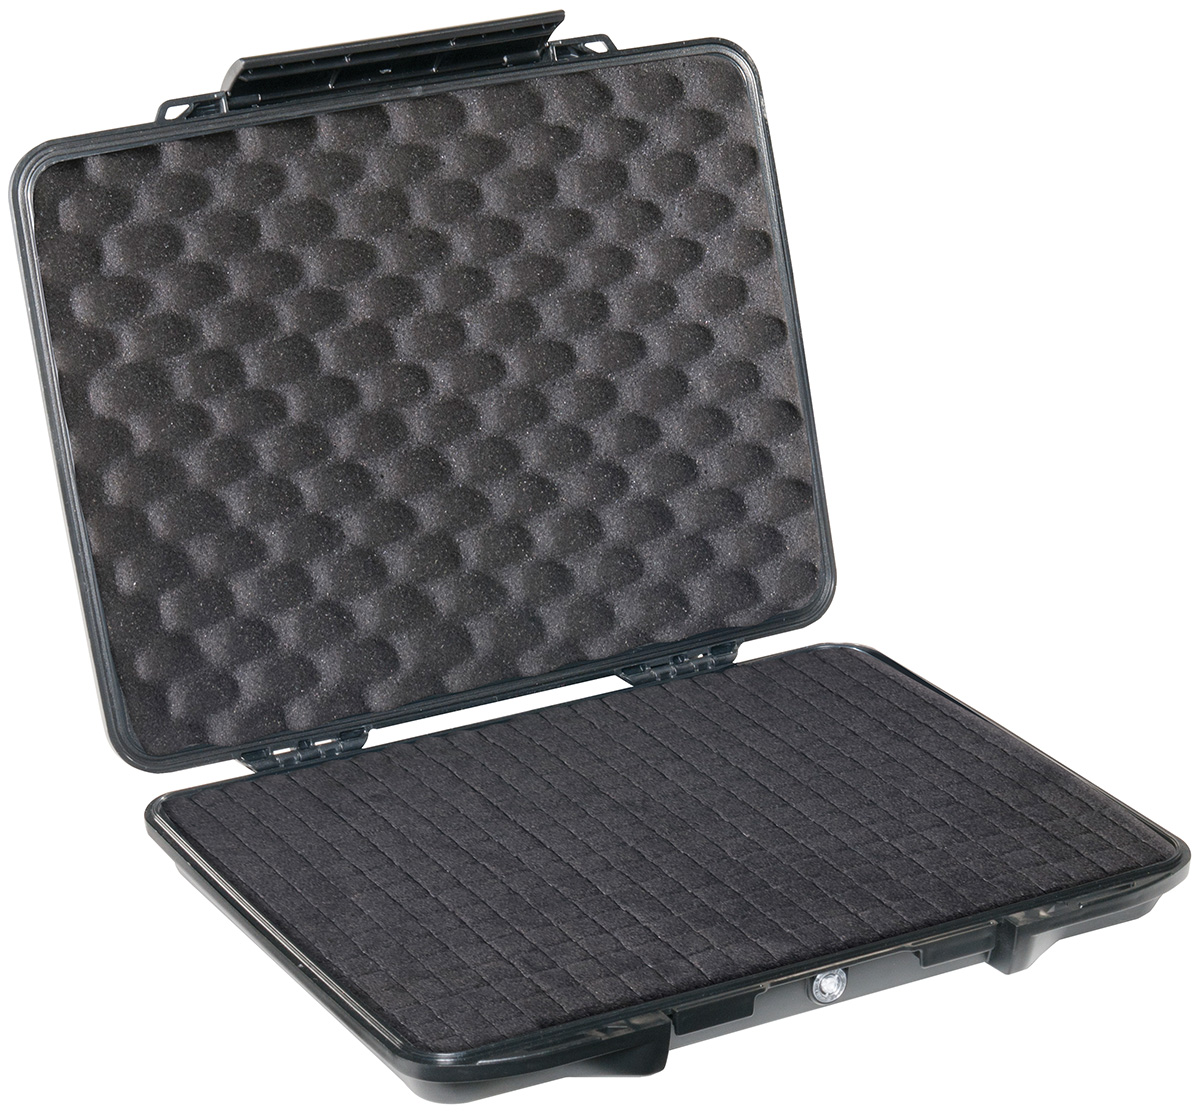 pelican peli products 1085 tough waterproof laptop lifetime case